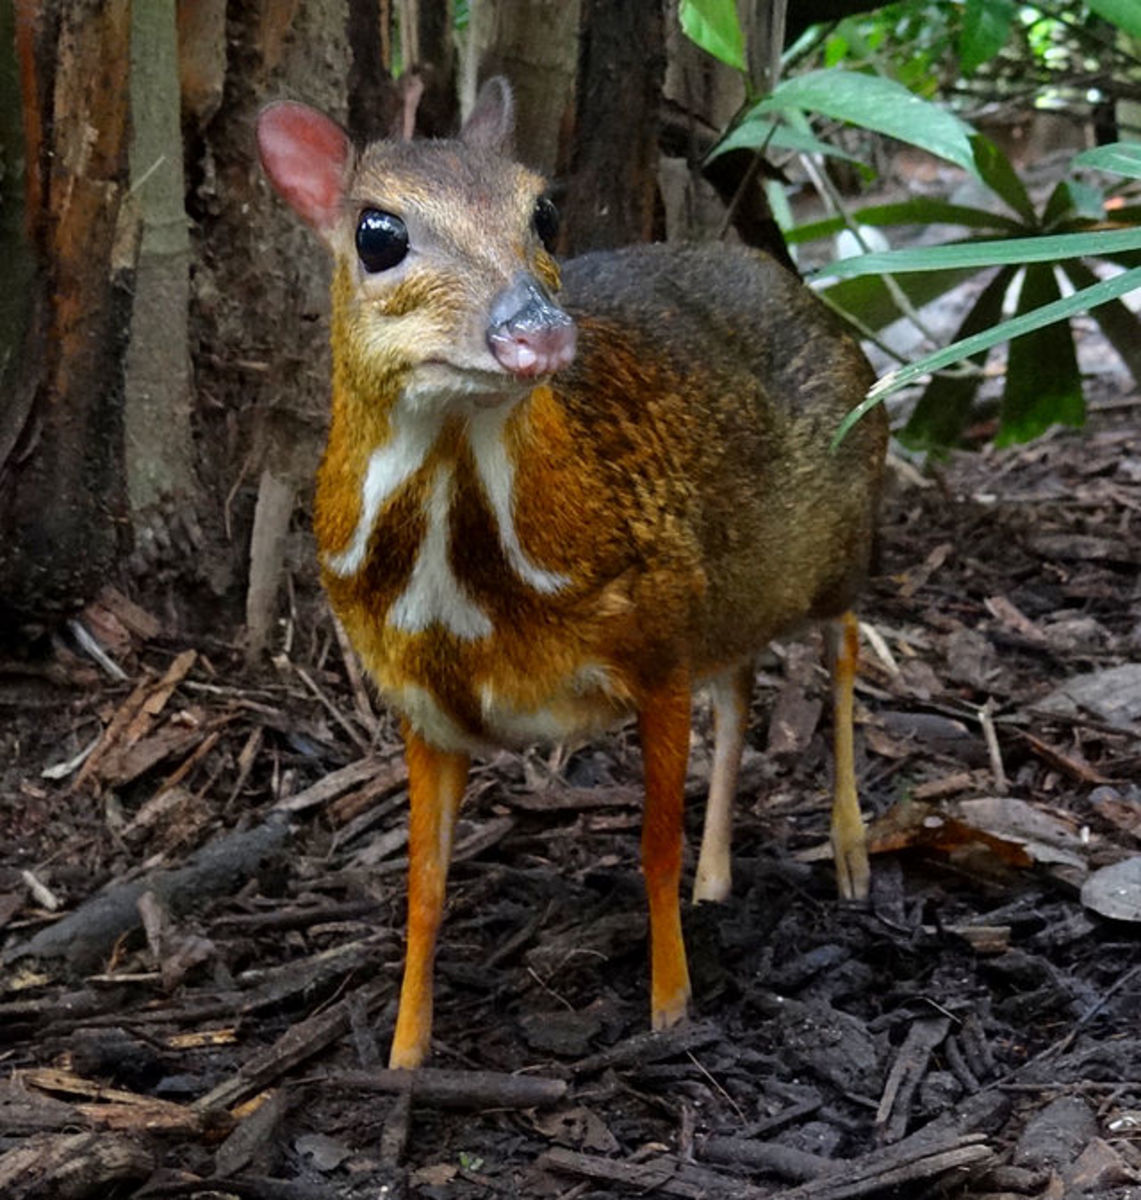 9. Pilandok or Philippine mouse deer (scientific name: Tragulus nigricans)